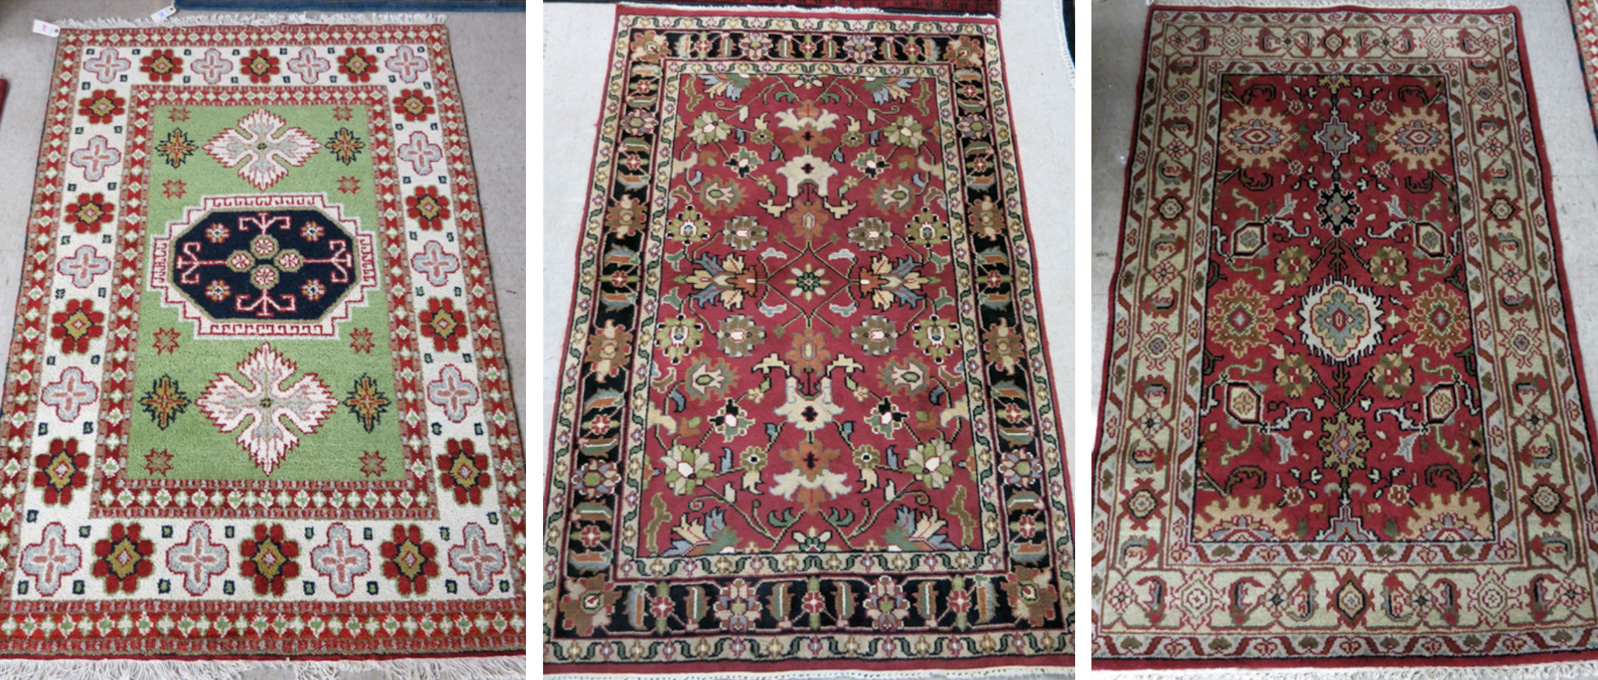 THREE HAND KNOTTED ORIENTAL AREA RUGS: 4'2""